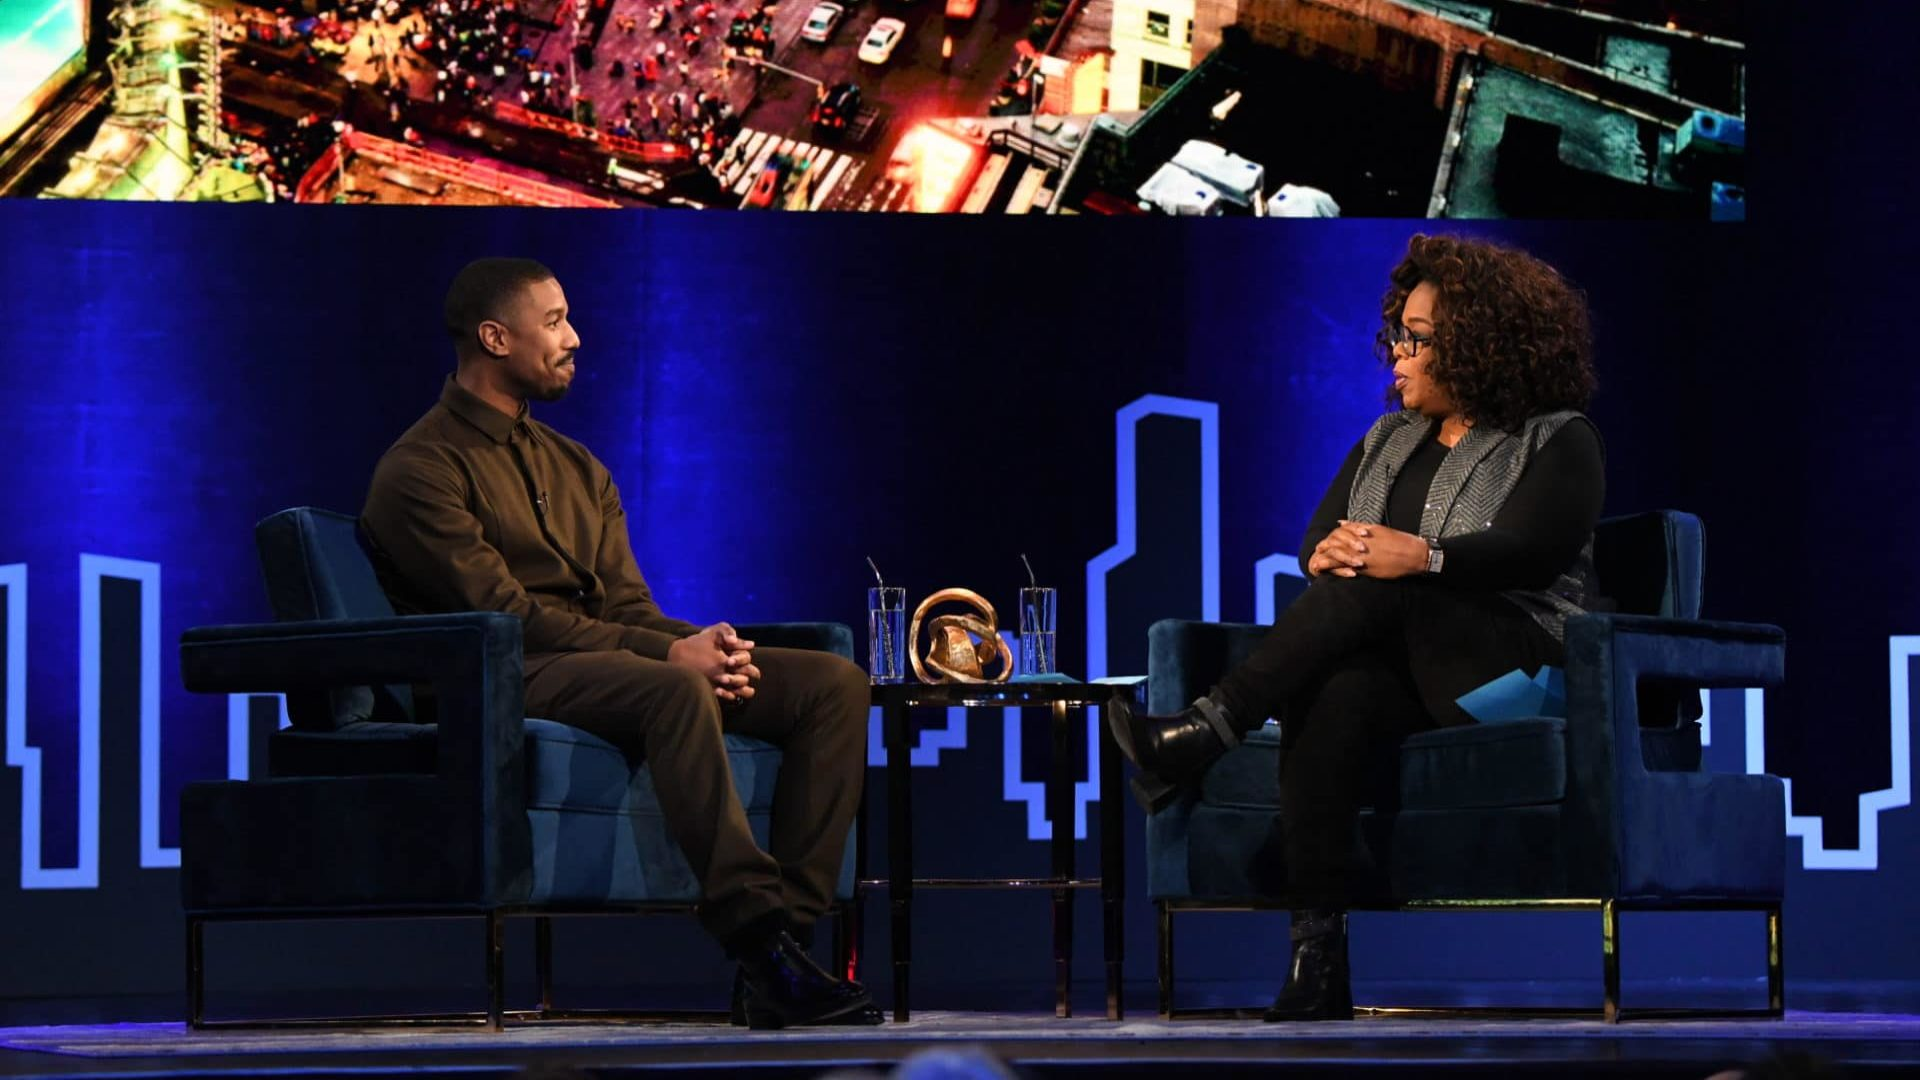 Michael B. Jordan Tells Oprah Winfrey About About The Time He Only Wanted Roles That Were For White Men